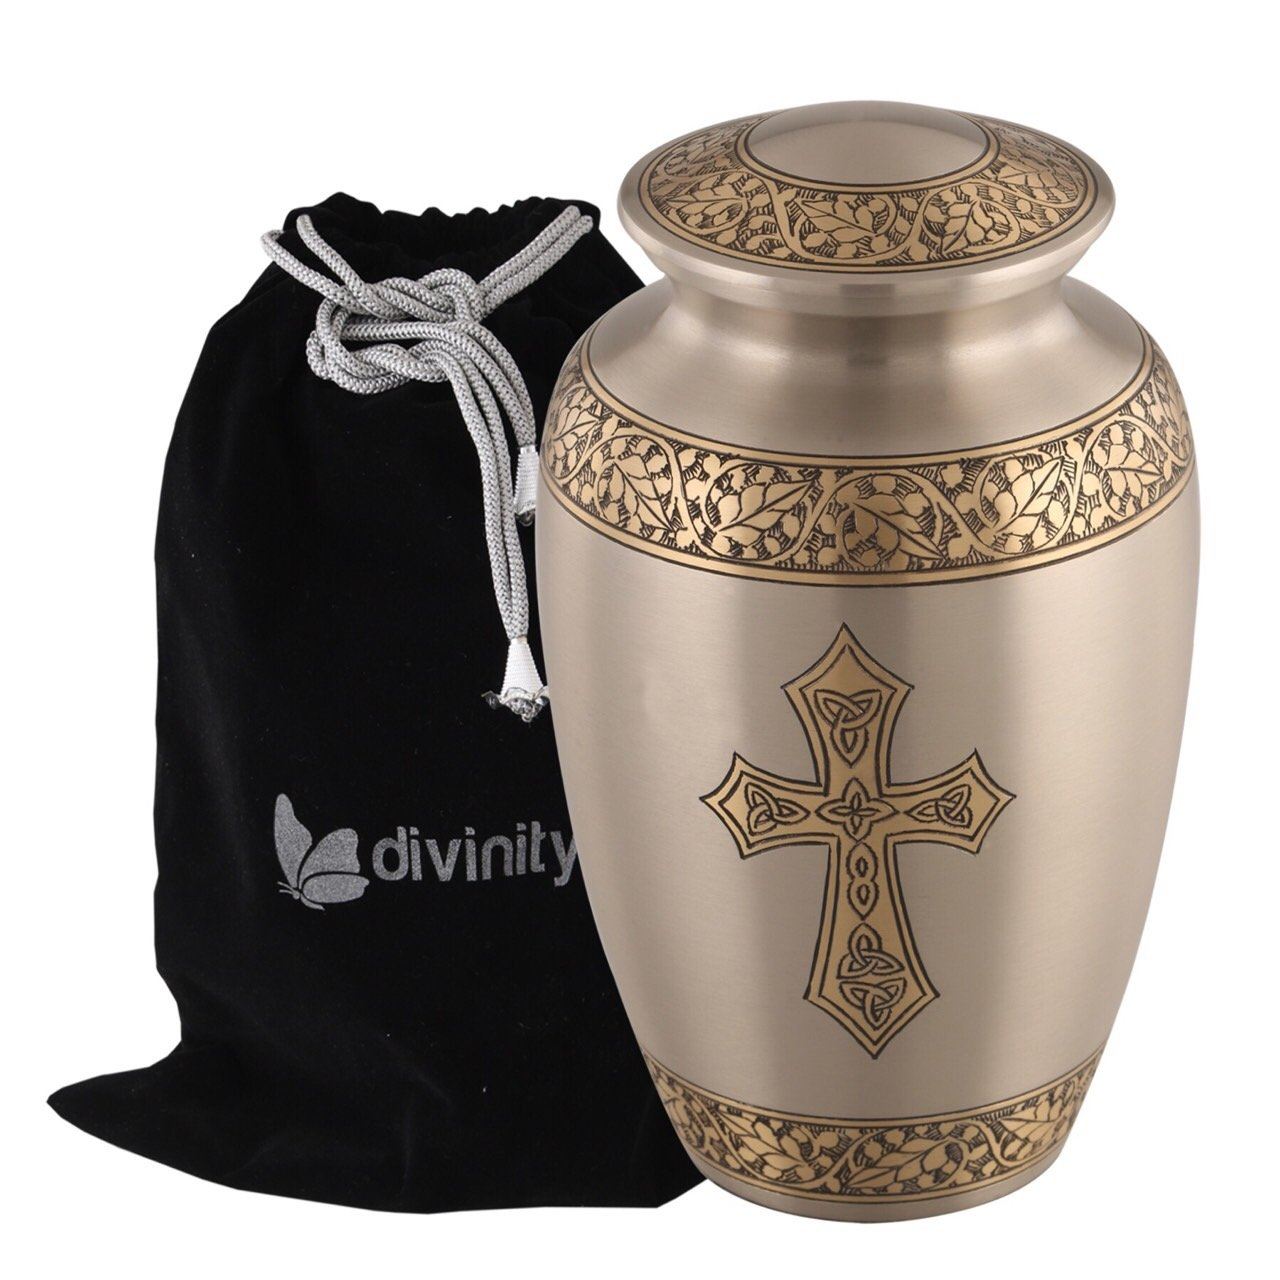 Blessings of Christ Platinum & Gold Cross Urn - Platinum Elegance Trinity Cross Urn - Religious Cremation Urn - Handcrafted Adult Religious Funeral Urn - Large Urn Deal